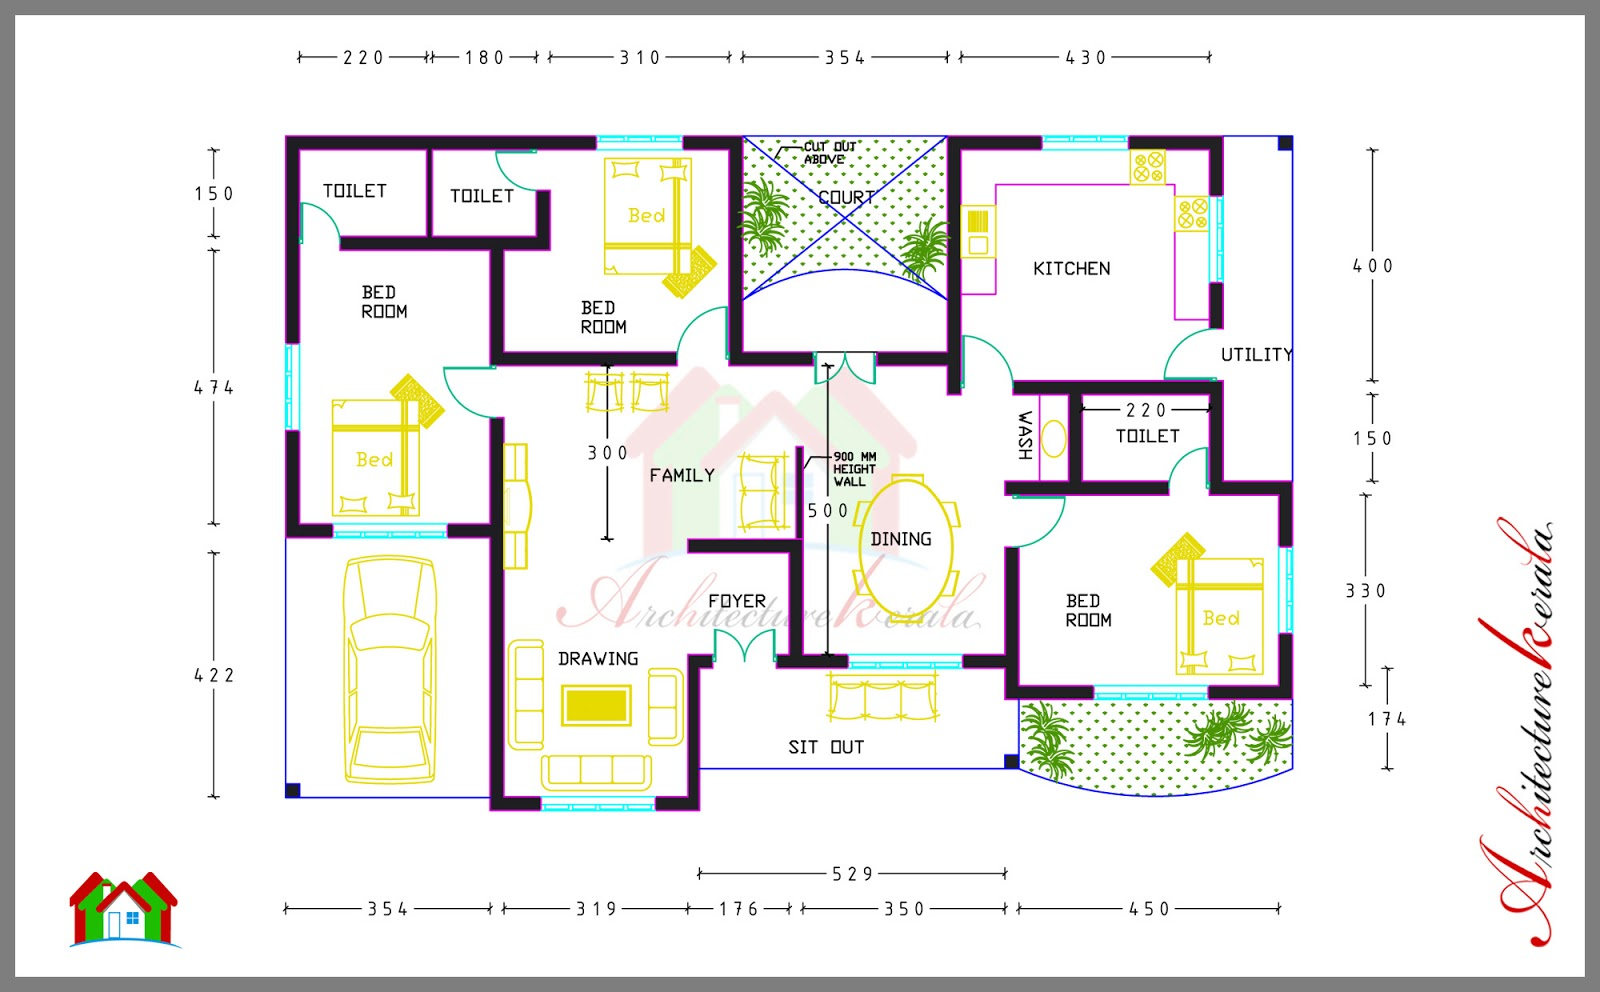 3 BED ROOM HOUSE PLAN WITH DIMENSIONS